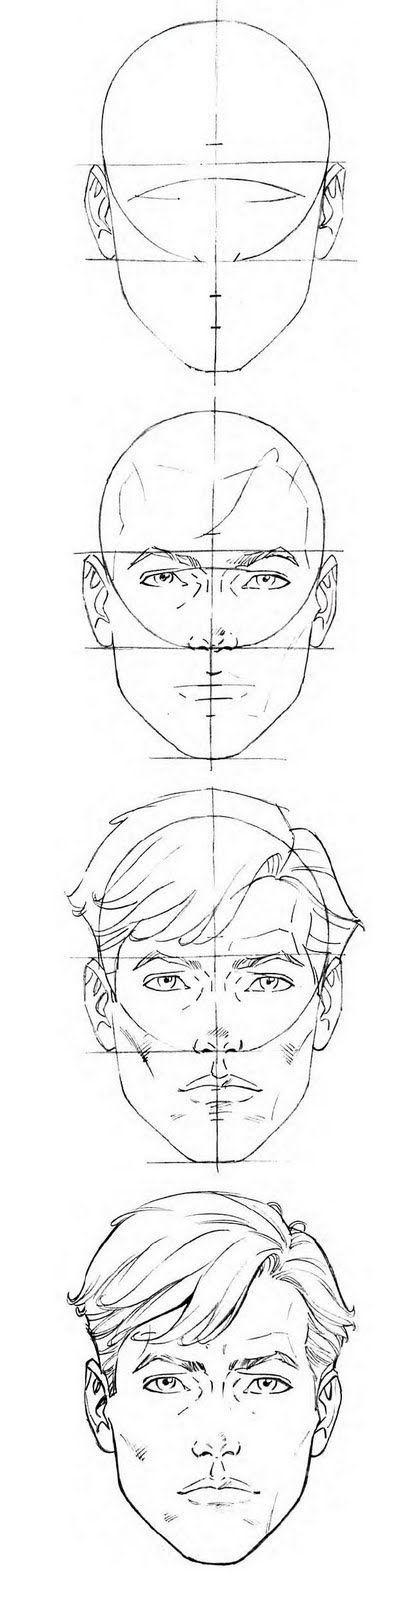 How To Draw A Male Head Art Blog Artisinspiration Photos Poses Drawing Phone Wallpaper Drawings Pencil Portrait Drawing Tutorial